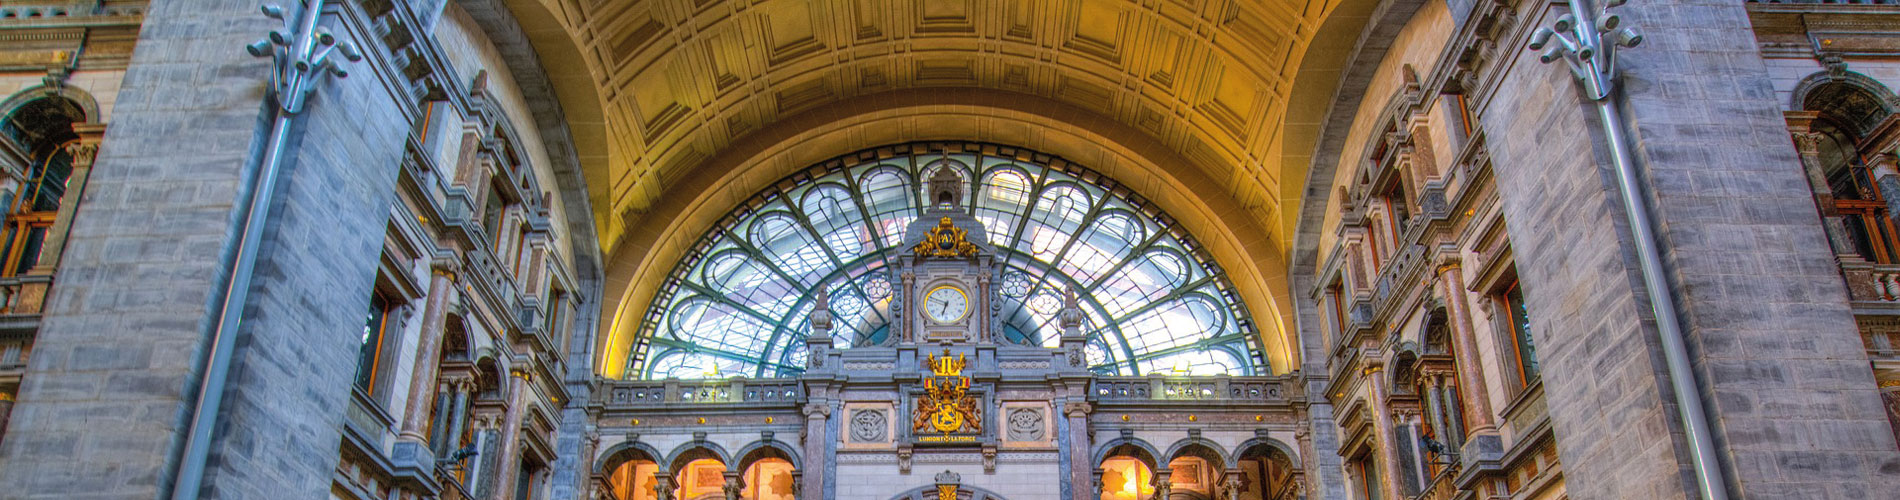 Blog_BelgianBreaks2020_Antwerp_CentralStation_1900x500_Q120